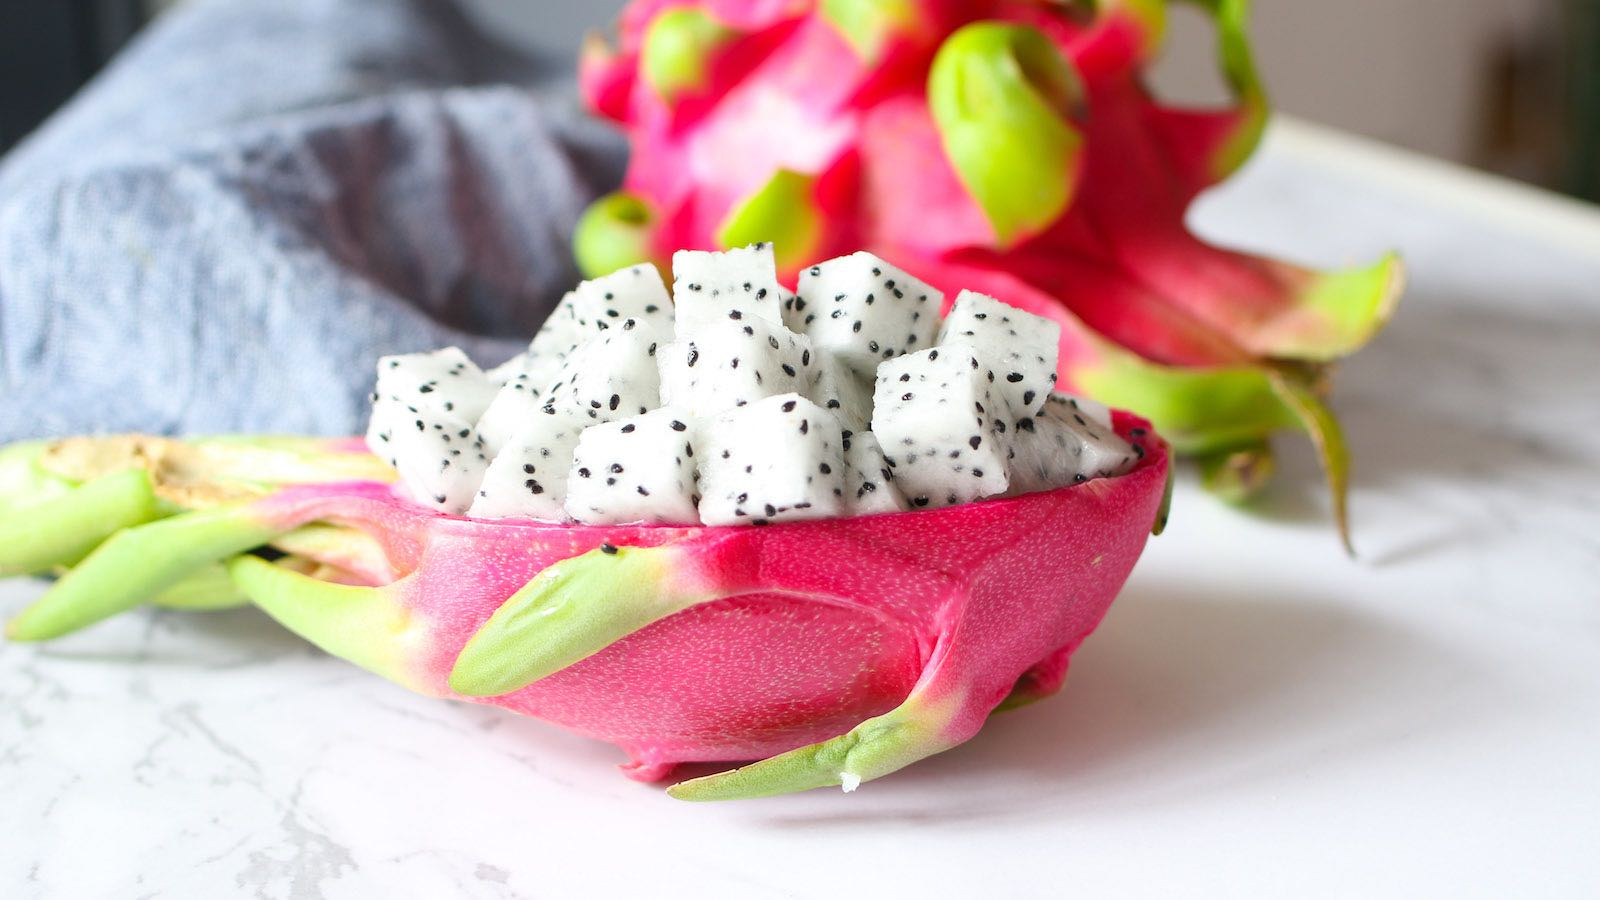 How To Cut And Eat Dragon Fruit Health Benefits Tipbuzz